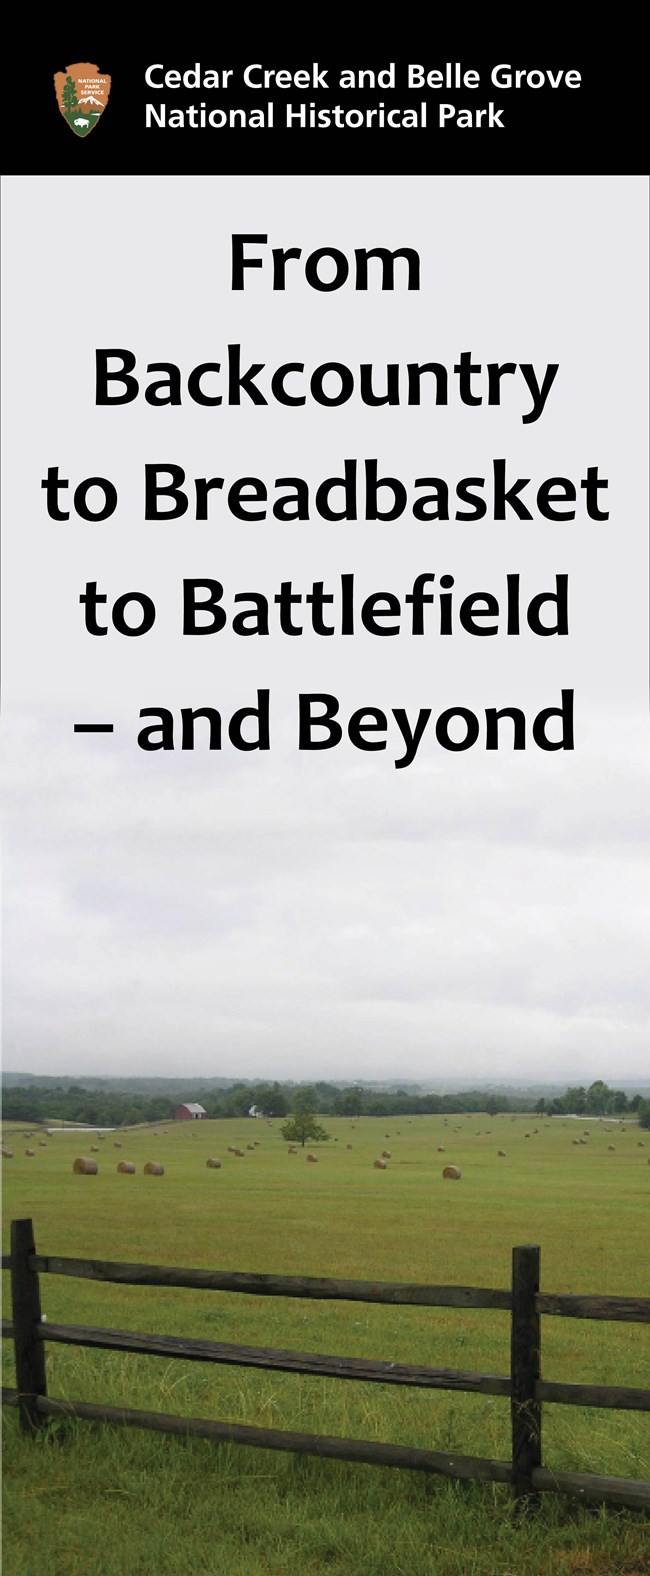 From Backcountry, to Breadbasket, to Battlefield, and Beyond